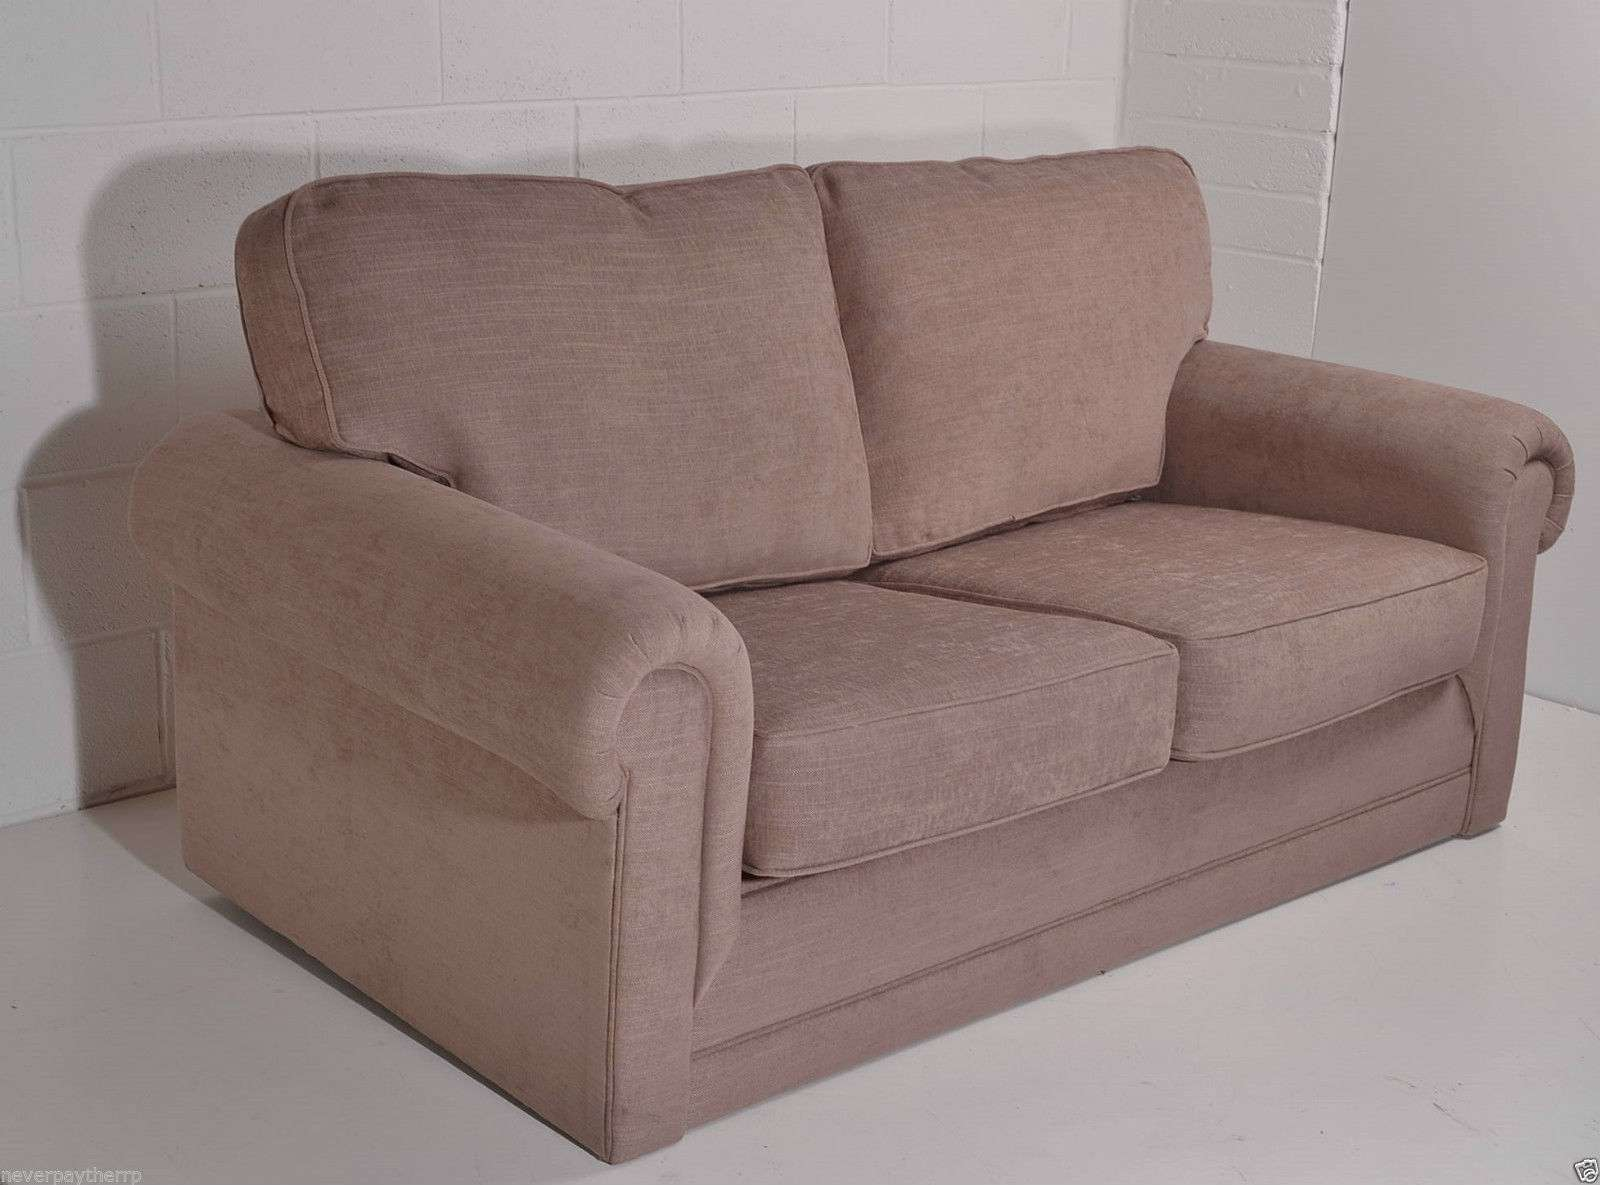 New John Lewis Elgar Sofa Bed Seater Without Mattress Shade Pier